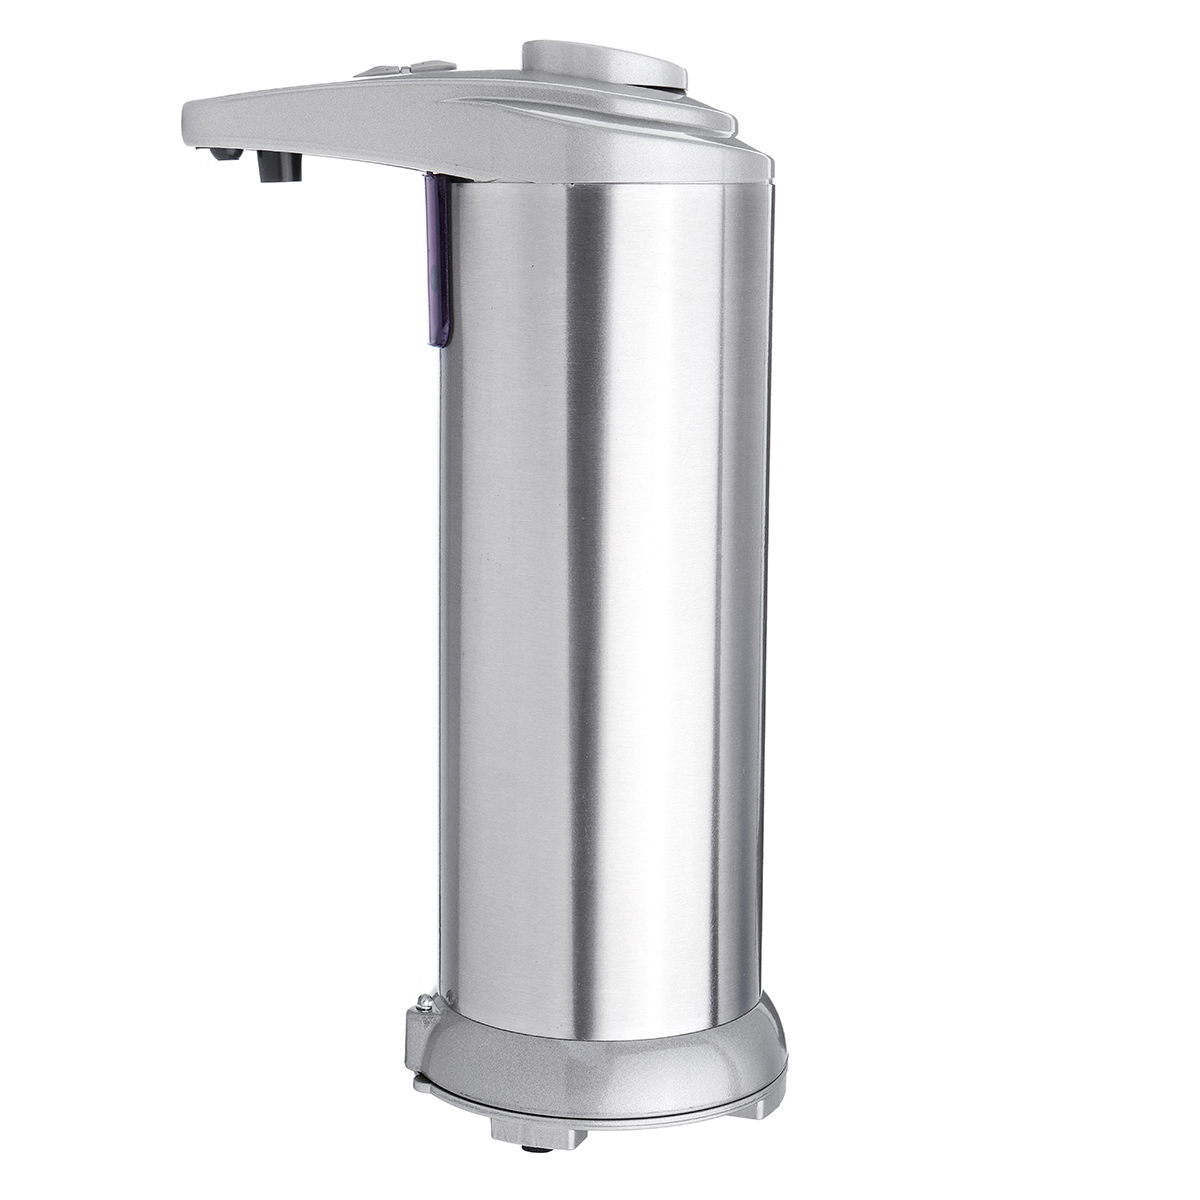 Touch Sensing Automatic Stainless Steel Silver Soap Dispenser 3 Adjustable Volume Settings 250ml Capacity